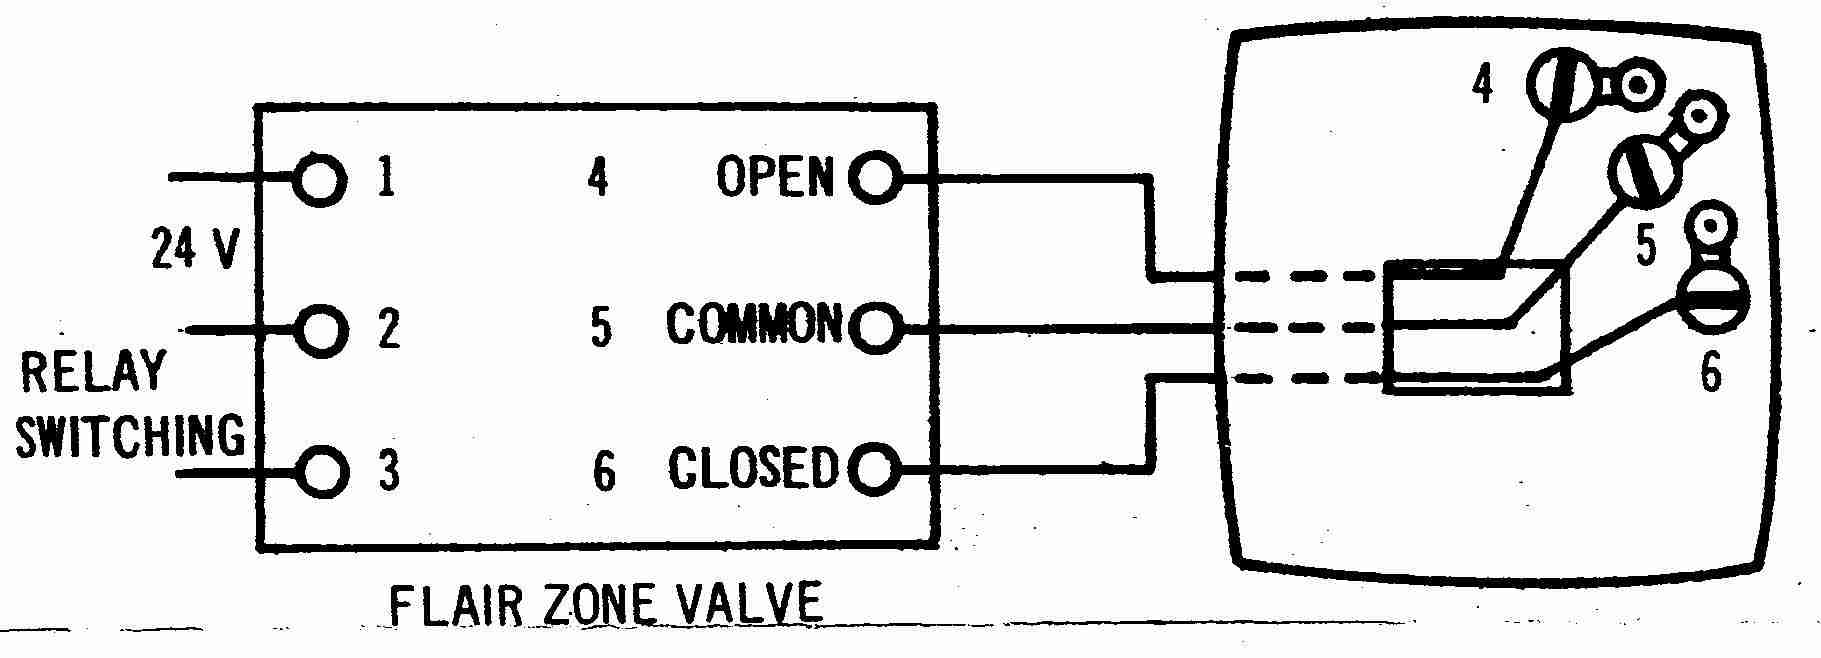 3 wire thermostat wiring diagram car led strip room diagrams for hvac systems flair controlling a zone valve